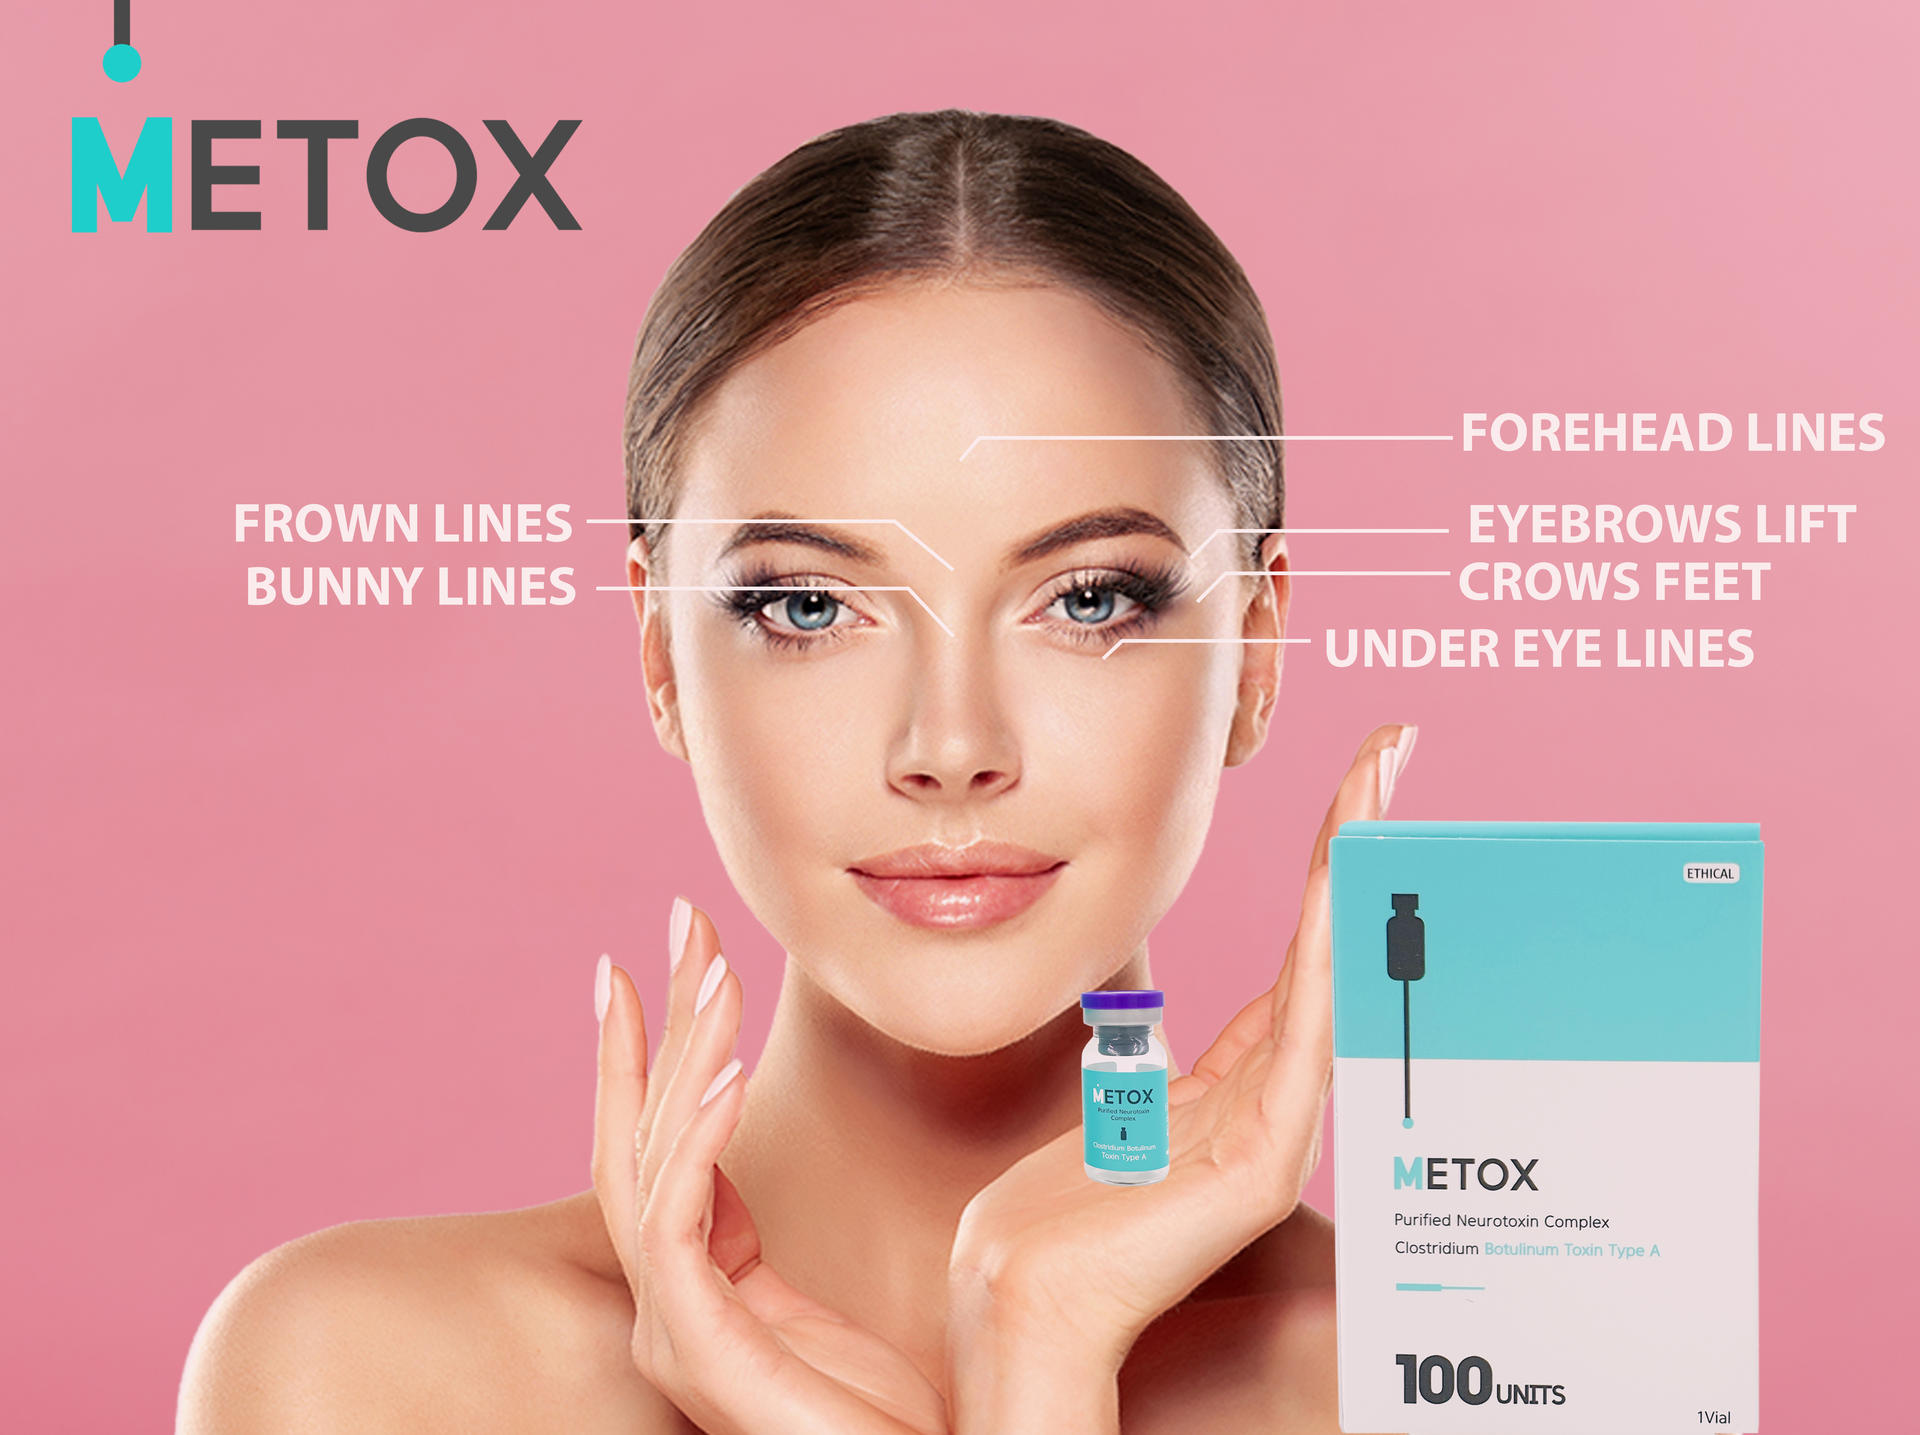 Metox Purified Toxin Type A Maypharm toxin 100 units injections wrinkle #maypharmtox Me too Filler toxins fillers face lips forehead fillers forehead